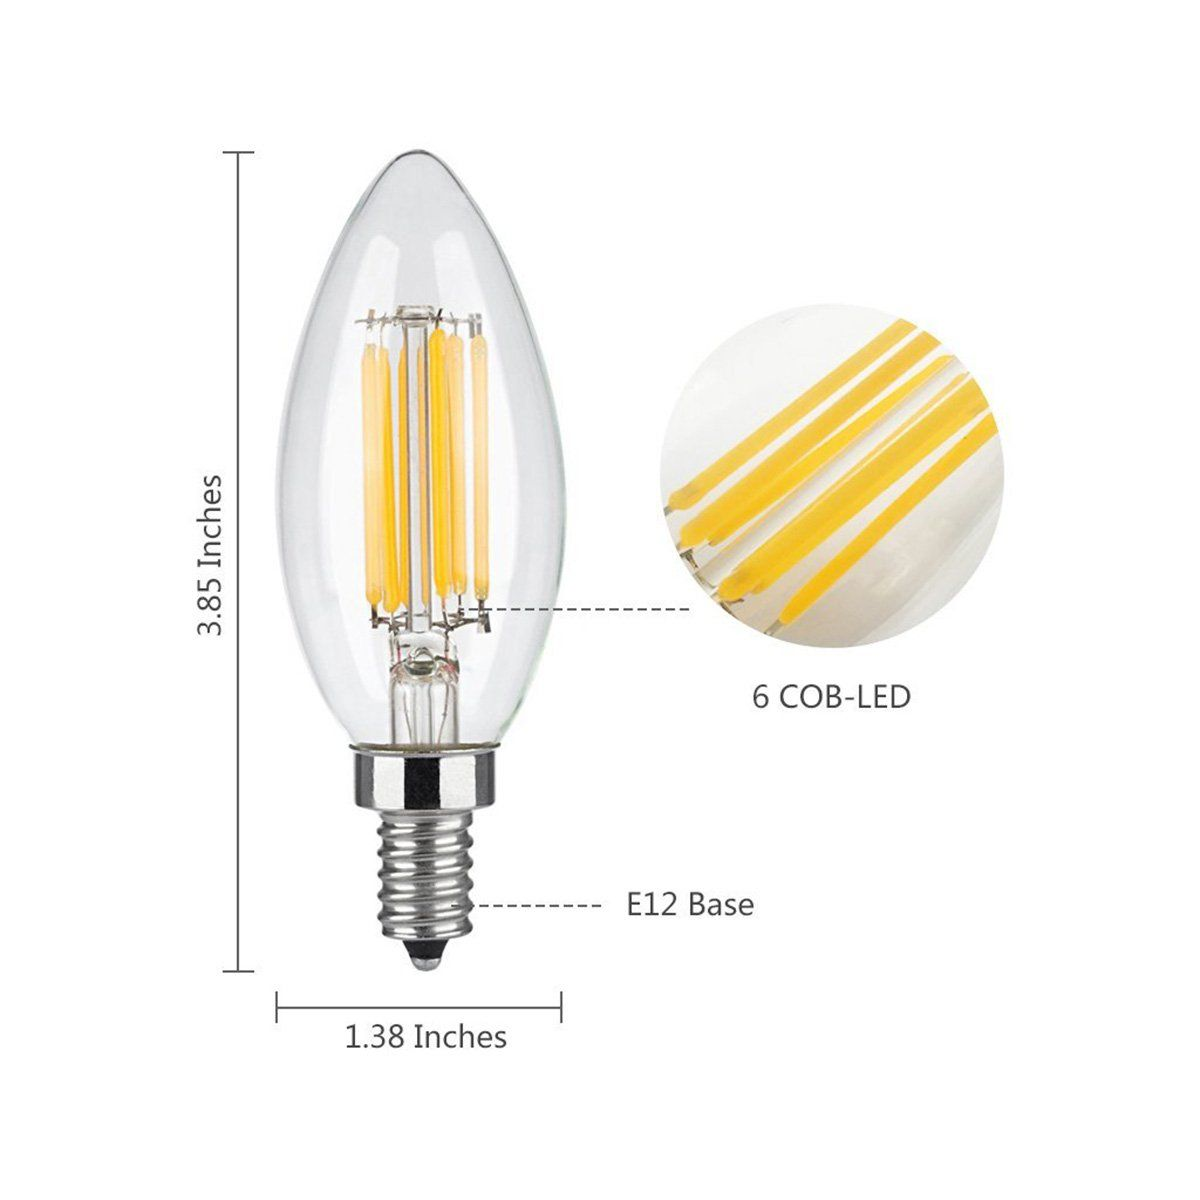 Wonninek 6w Dimmable Led Filament Candle Light 3200k 600lm Chandelier Led Bulb E12 Candelabra Base Lamp C35 Torpedo Shape Bull Dimmable Led Led Bulb Light Bulb